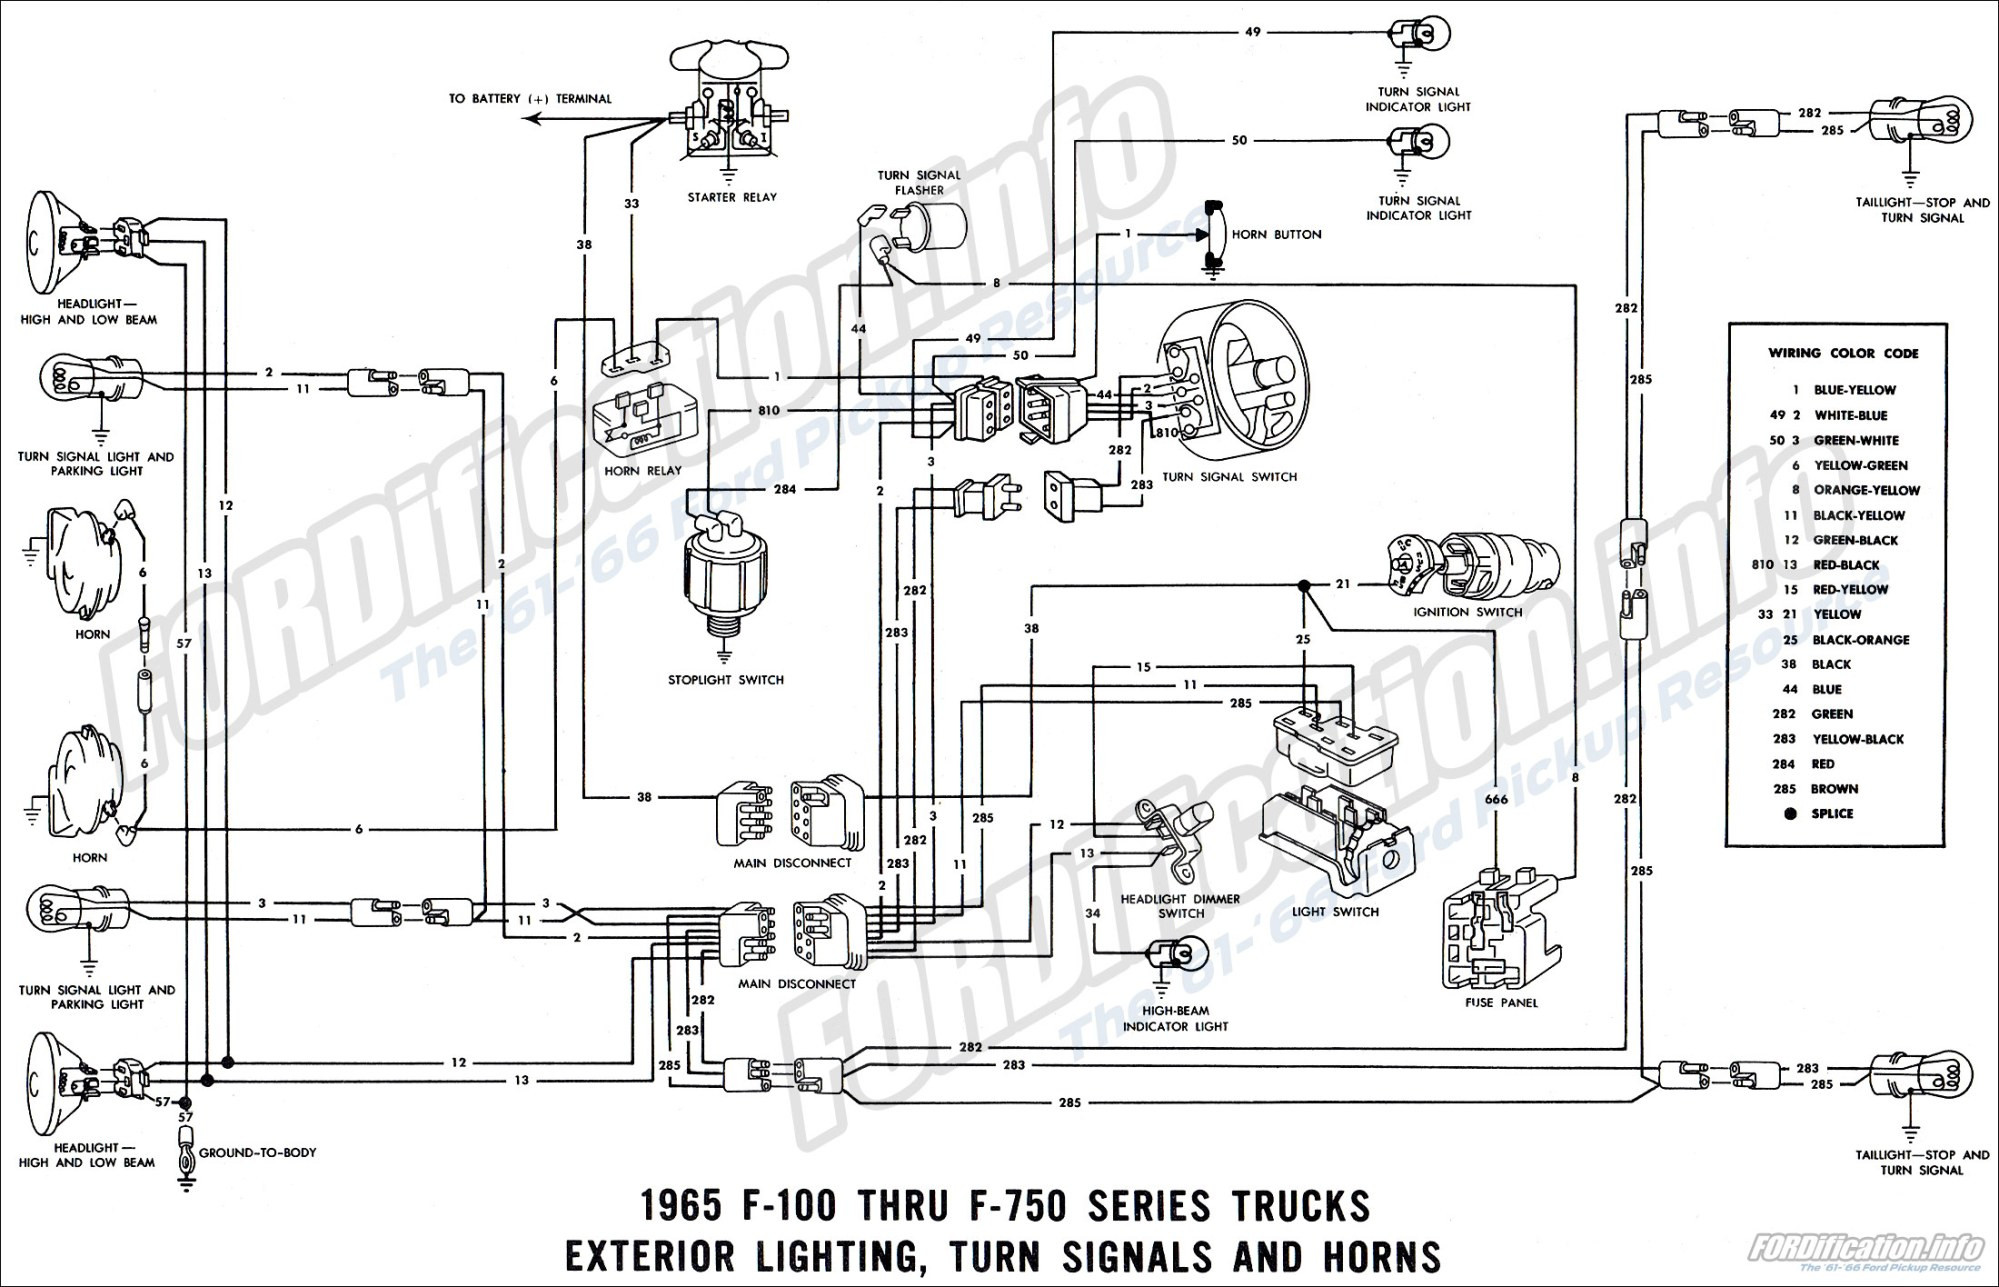 hight resolution of 1965 f100 wiring diagram wiring diagram name 1965 ford thunderbird wiring diagram 1965 ford truck wiring